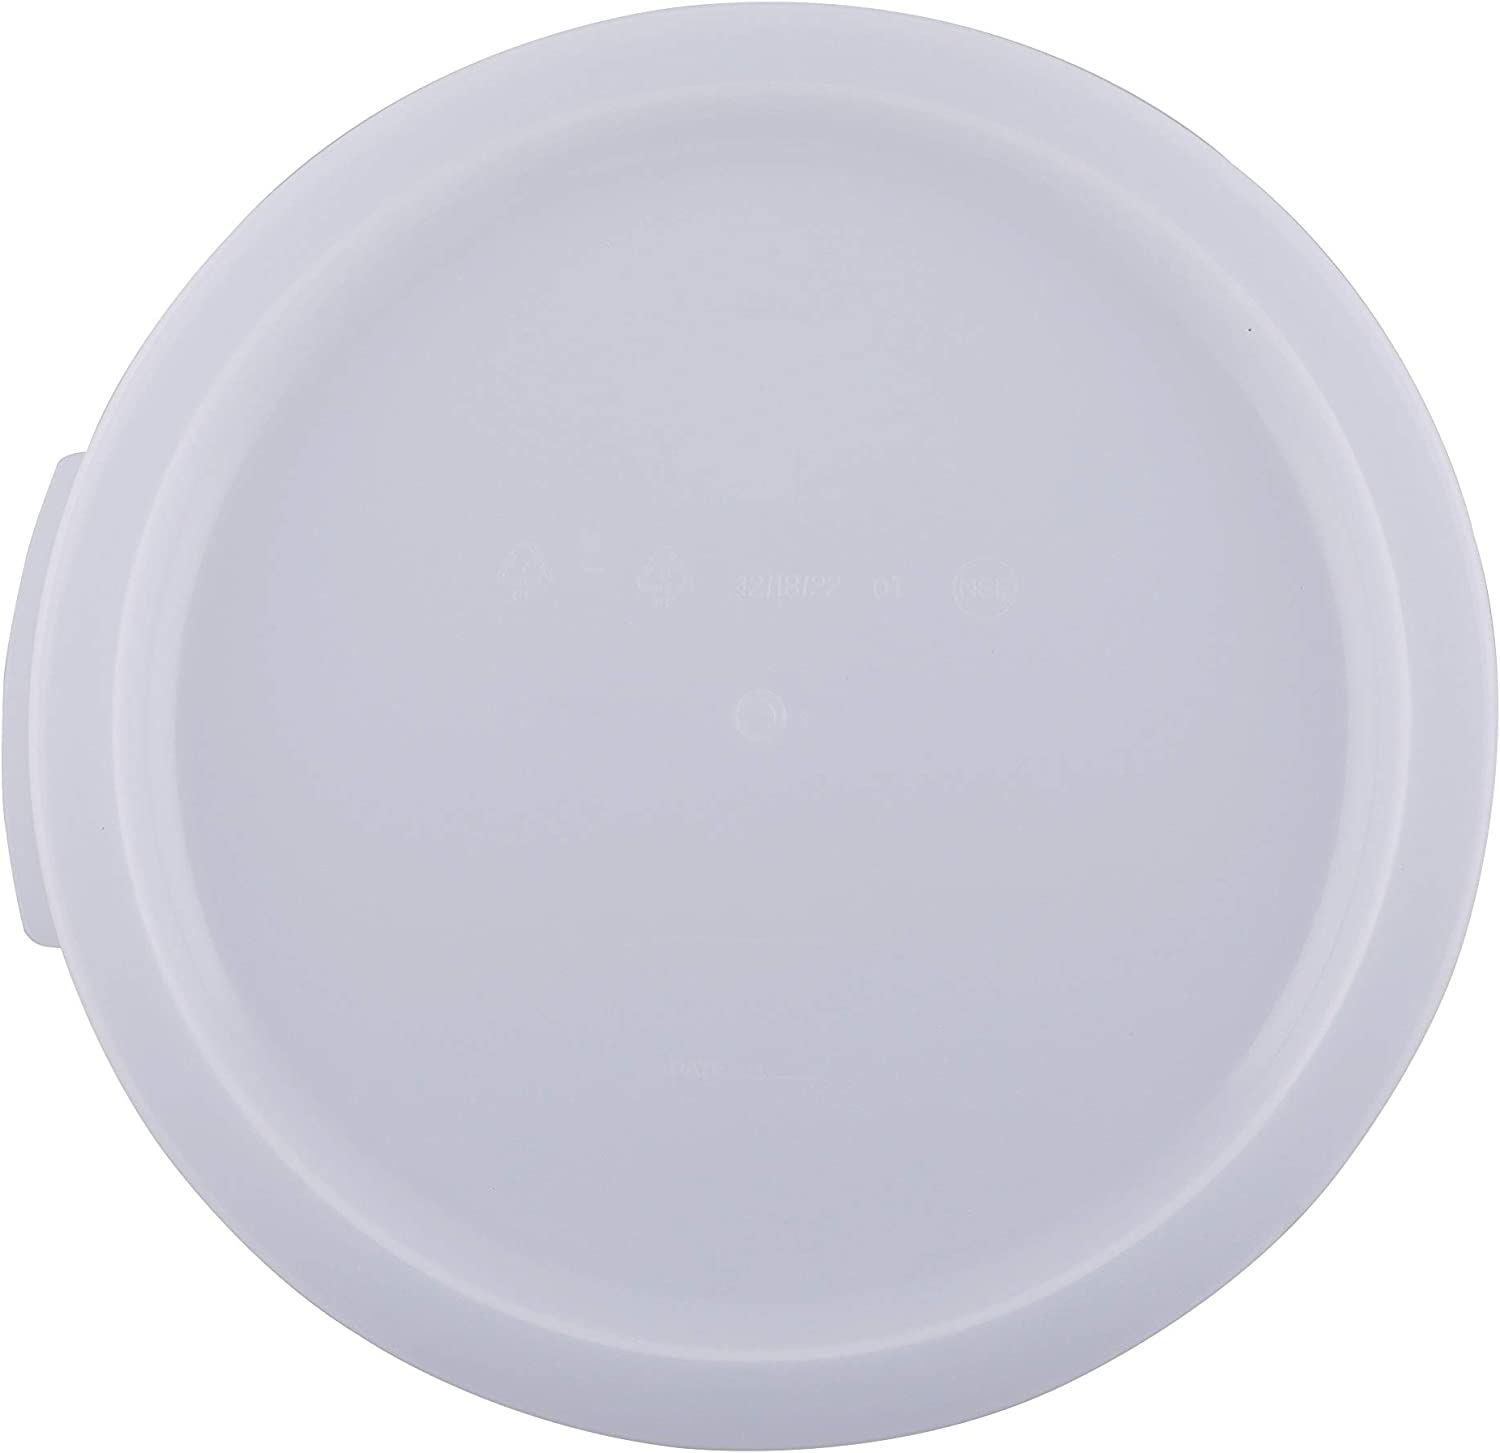 Caspian 12,18 and 22 QT Clear Round Polycarbonate Food Storage Box Container Lid, 1 Piece (12?18?22QT Lid)